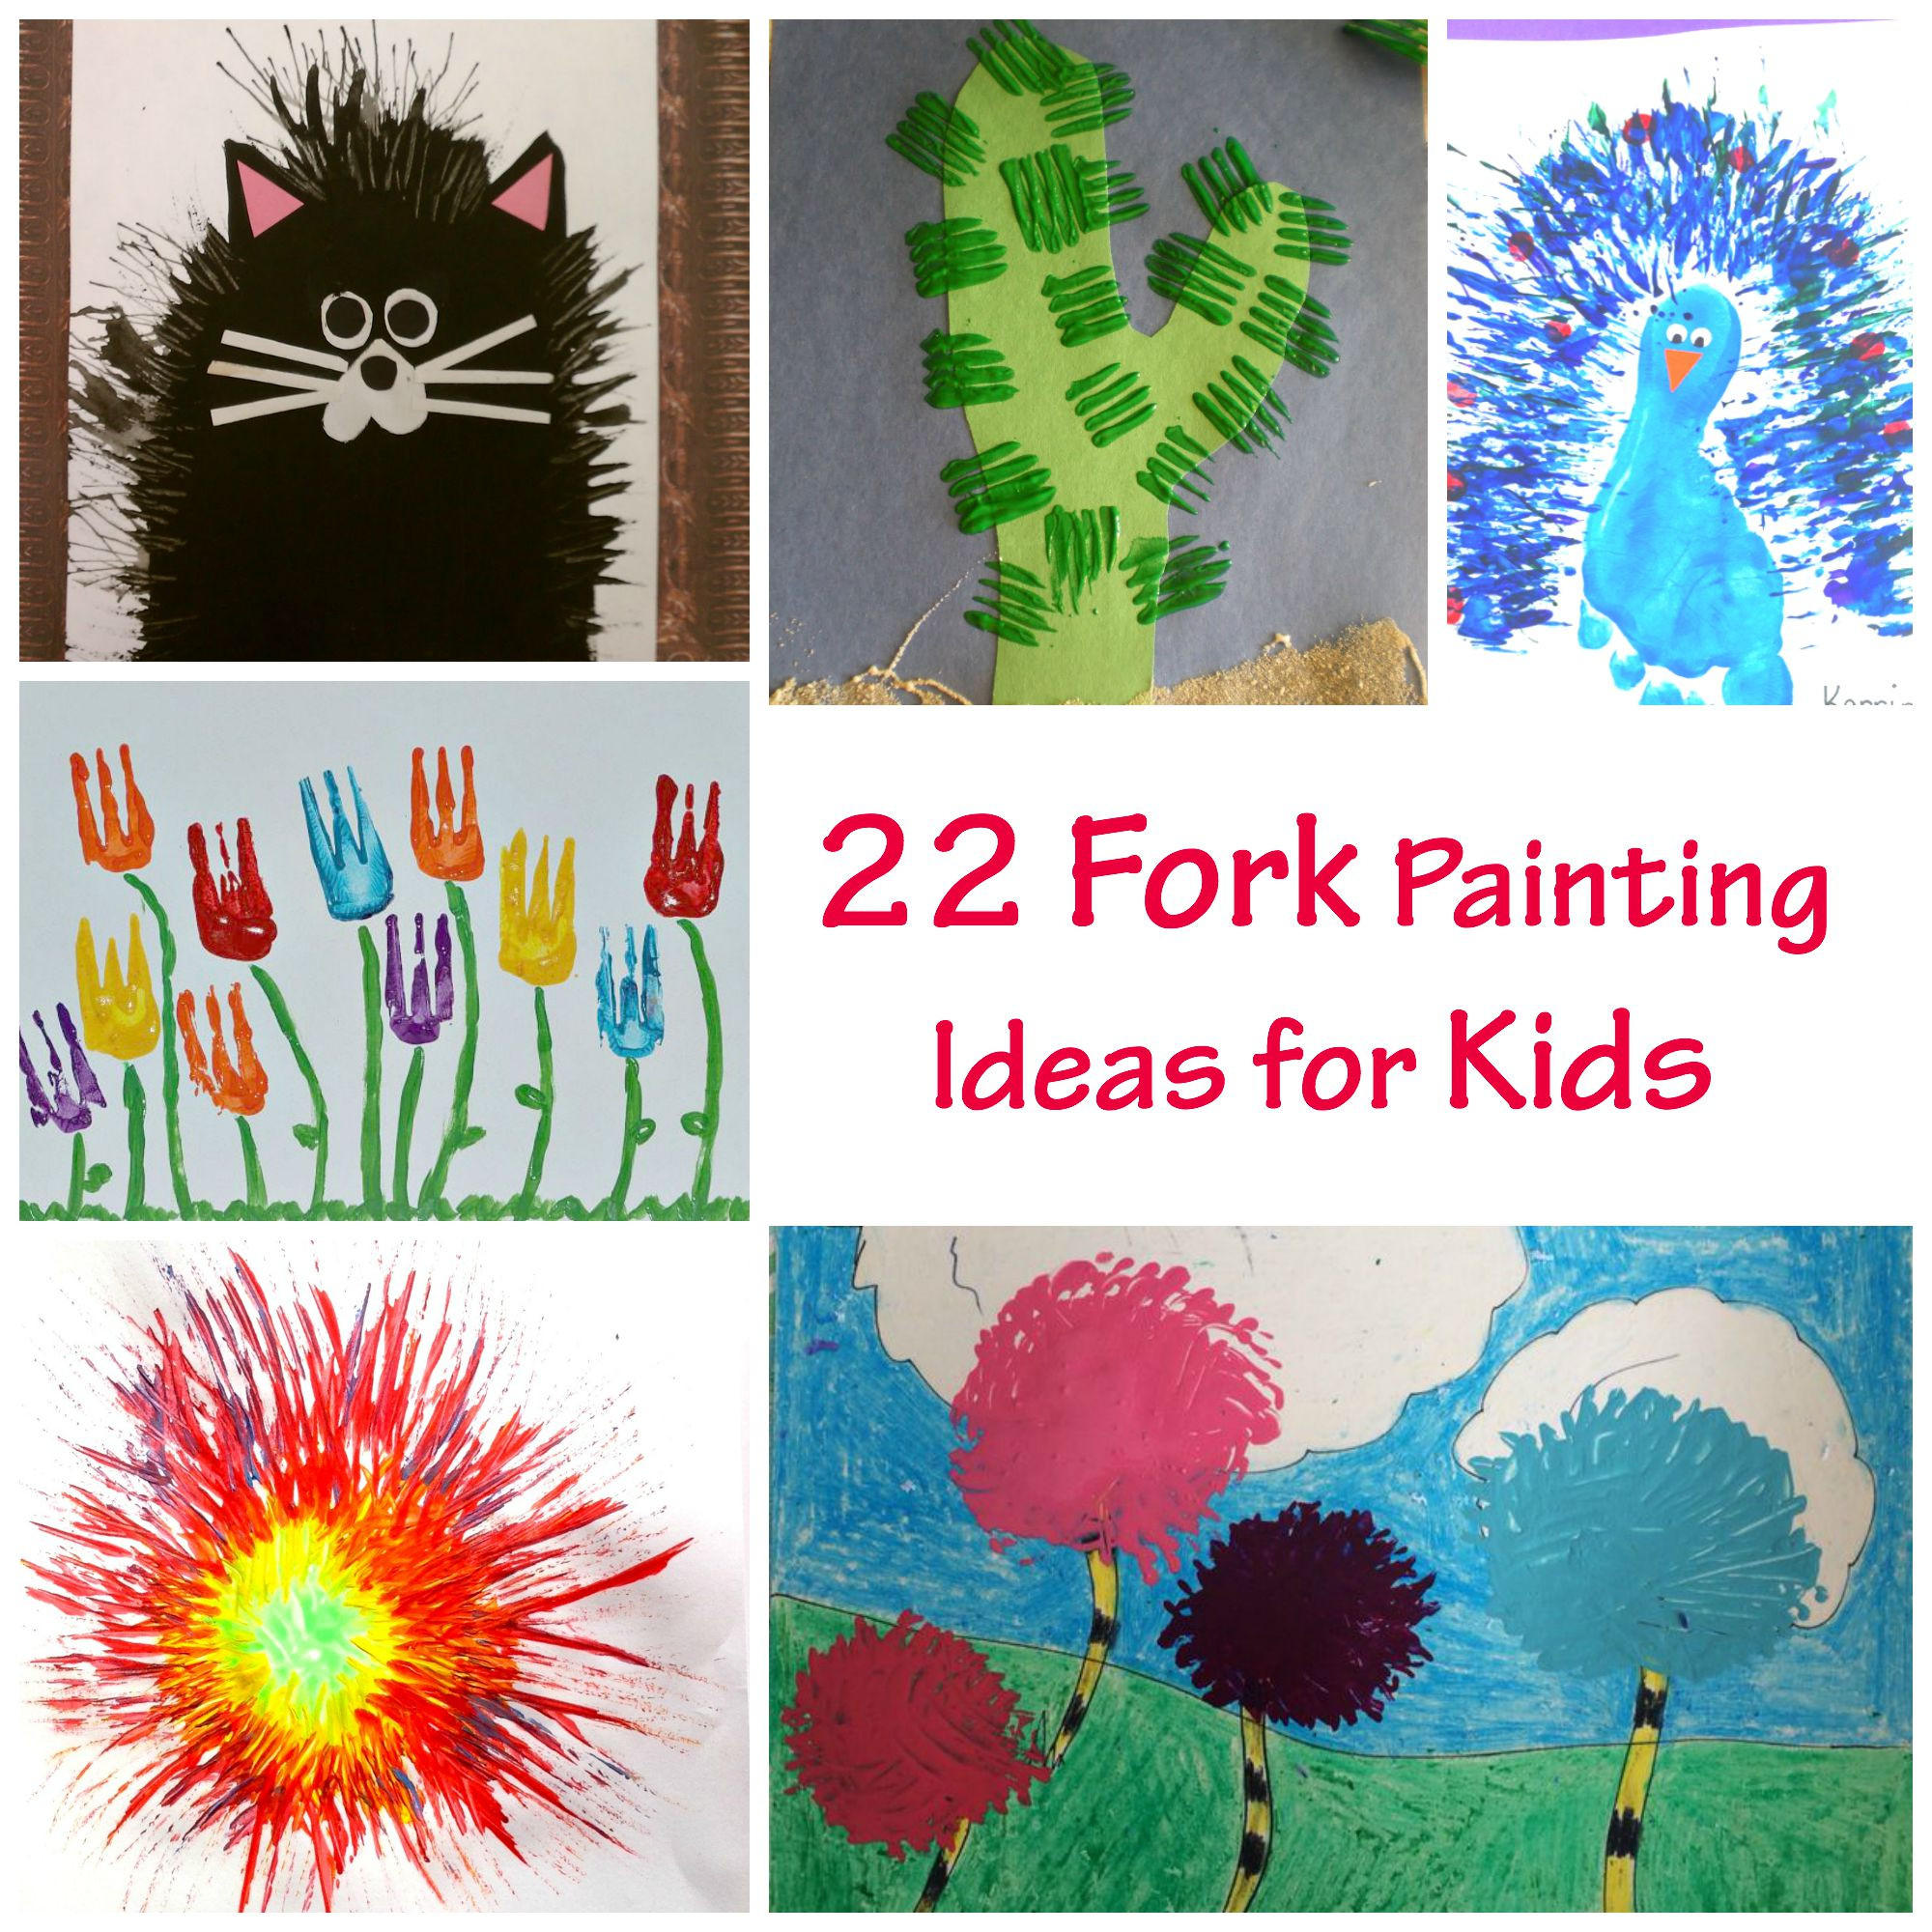 Best ideas about Paint Ideas For Toddlers . Save or Pin 22 Fork Painting Ideas for Kids PELITABANGSA CA Now.